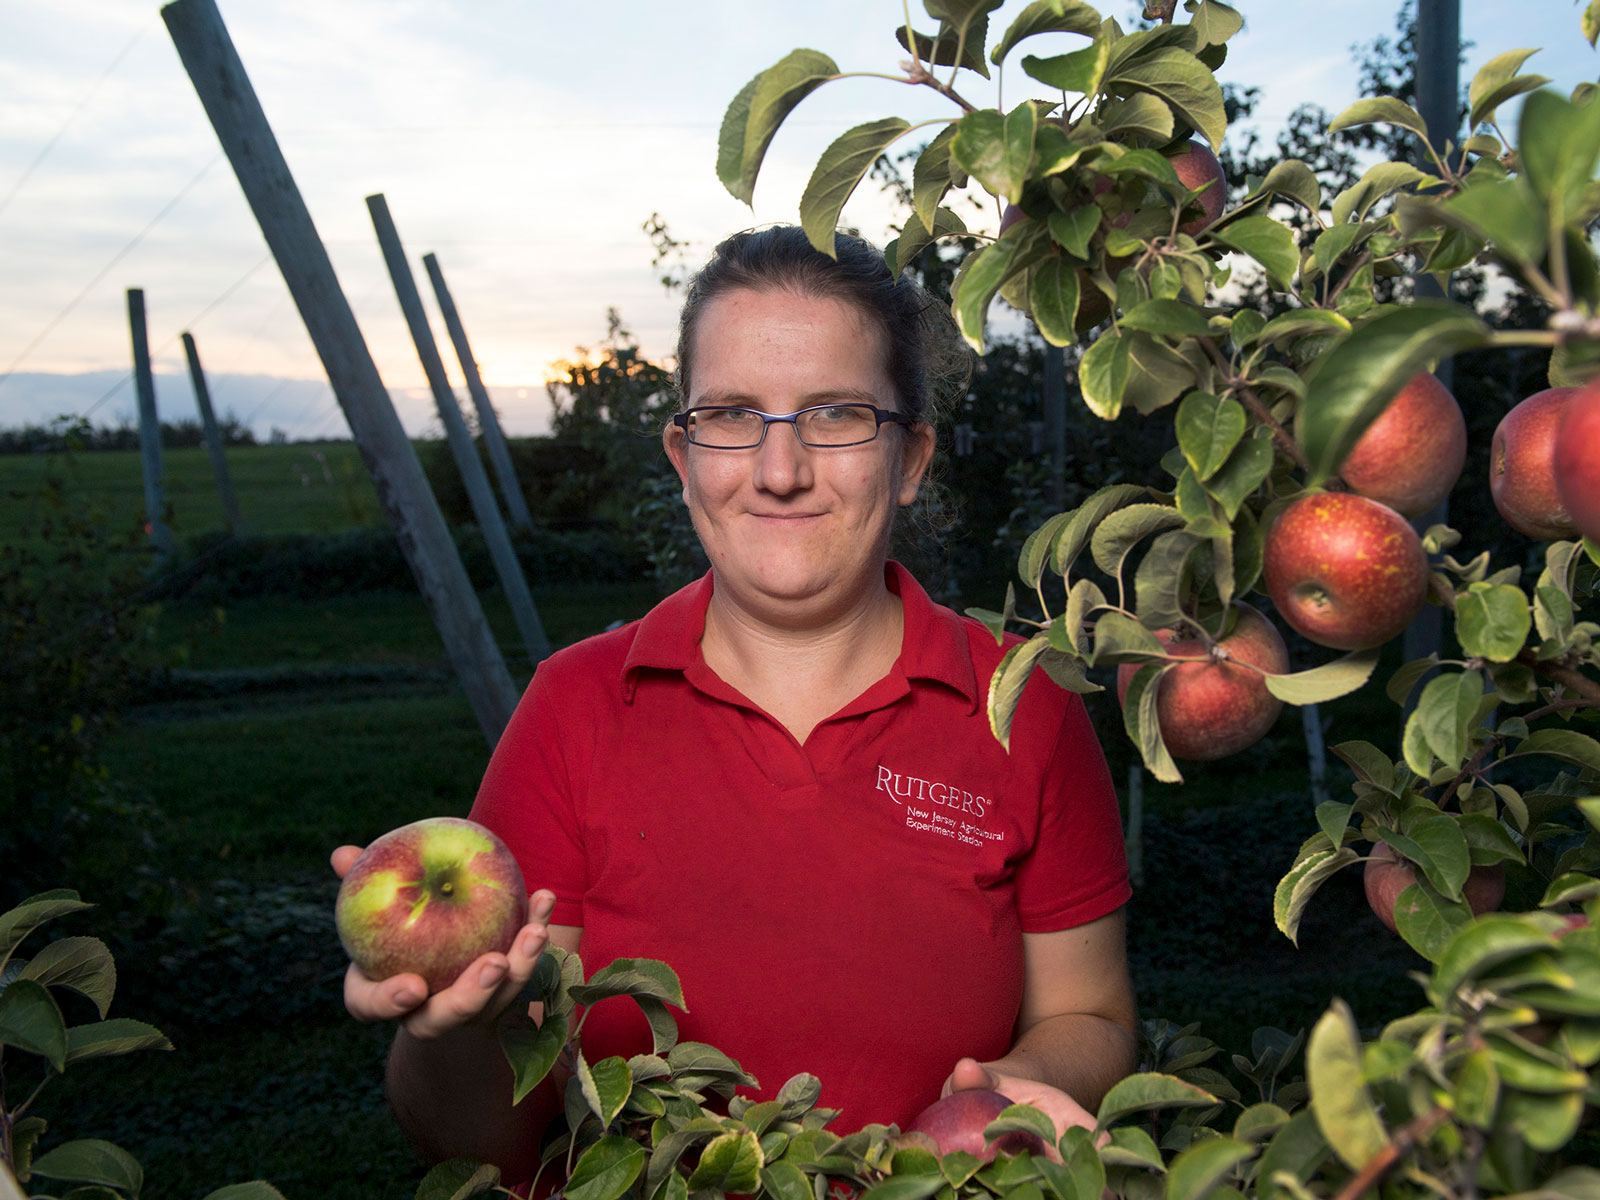 Can New Jersey Return to Its Cider-Making Glory Days?